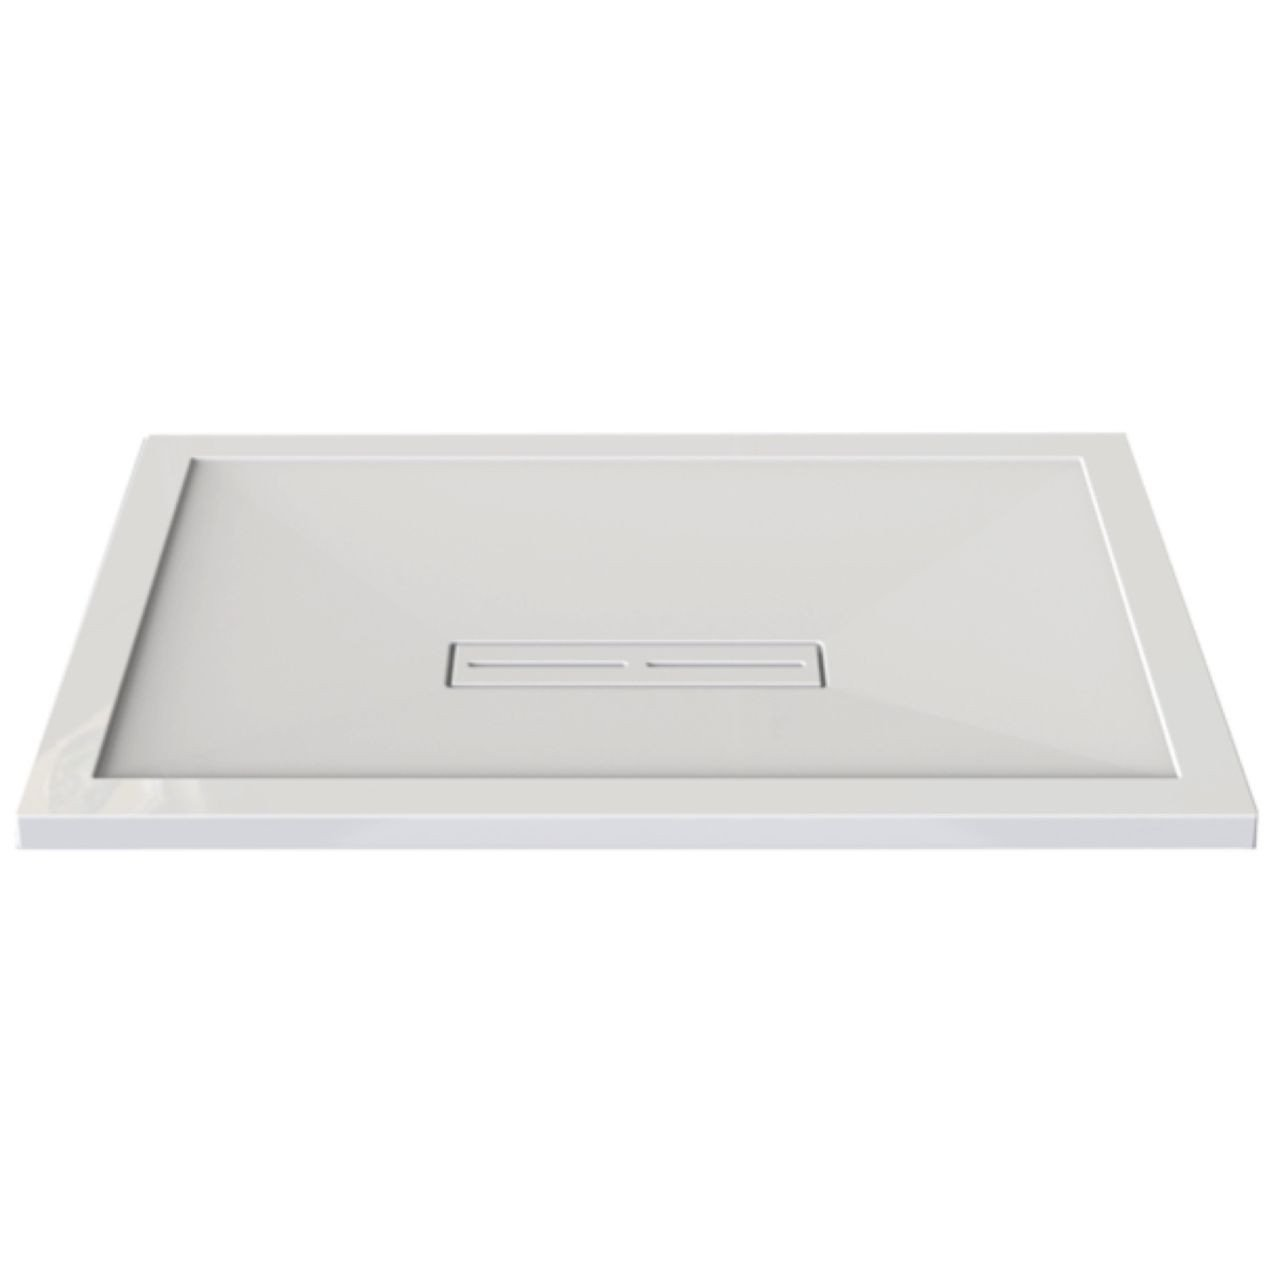 Kudos Connect2 1500mm x 900mm x 35mm Rectangular Shower Tray - C2T15090